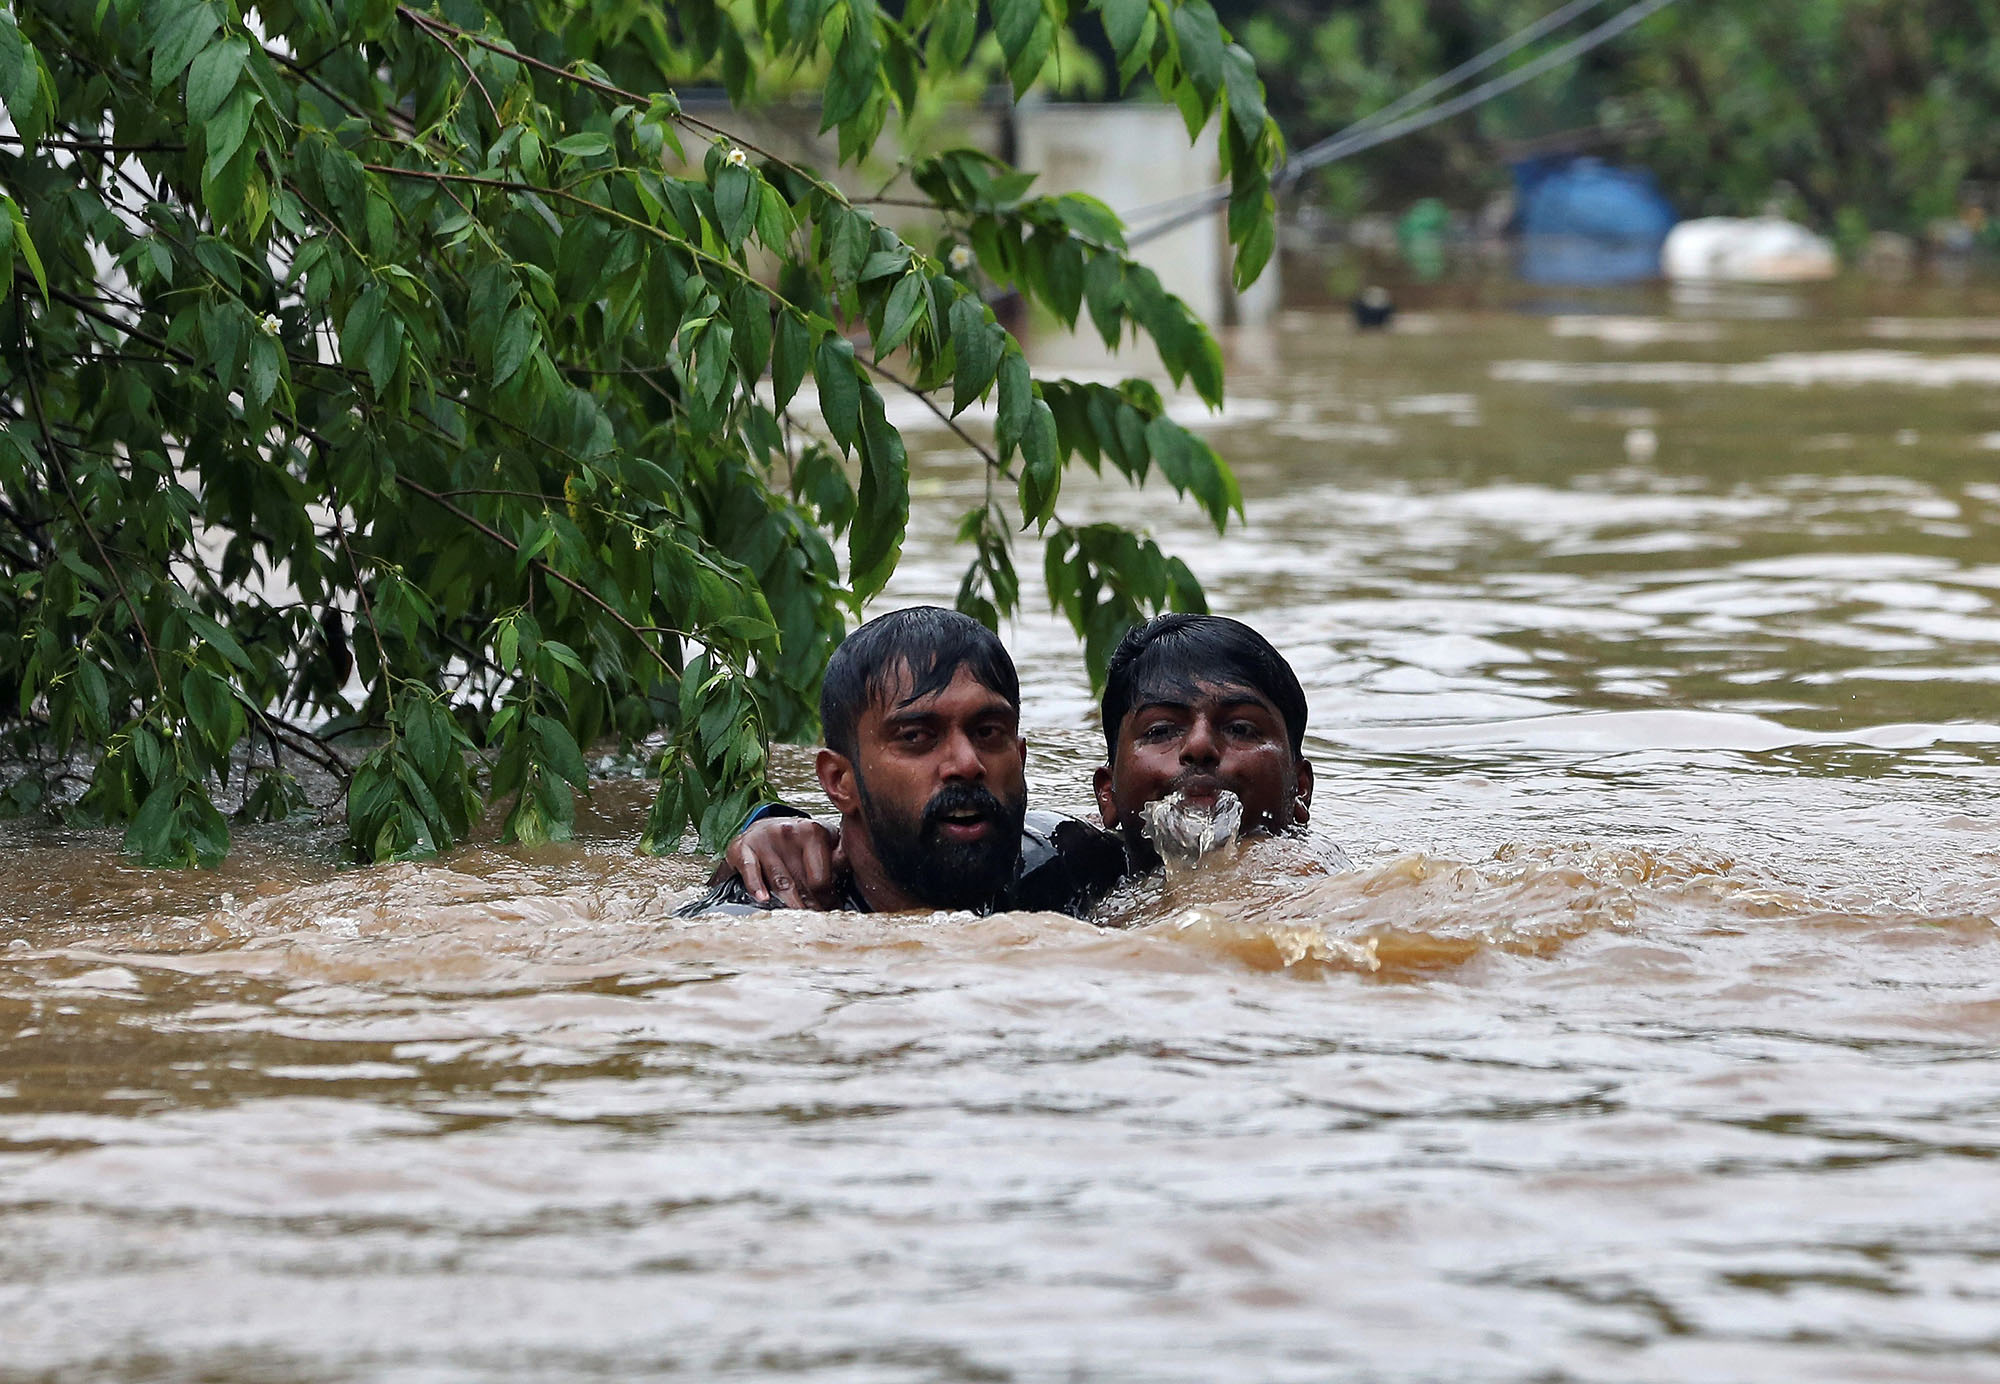 A man rescues a drowning man from a flooded area after the opening of Idamalayr, Cheruthoni and Mullaperiyar dam shutters following heavy rains, on the outskirts of Kochi